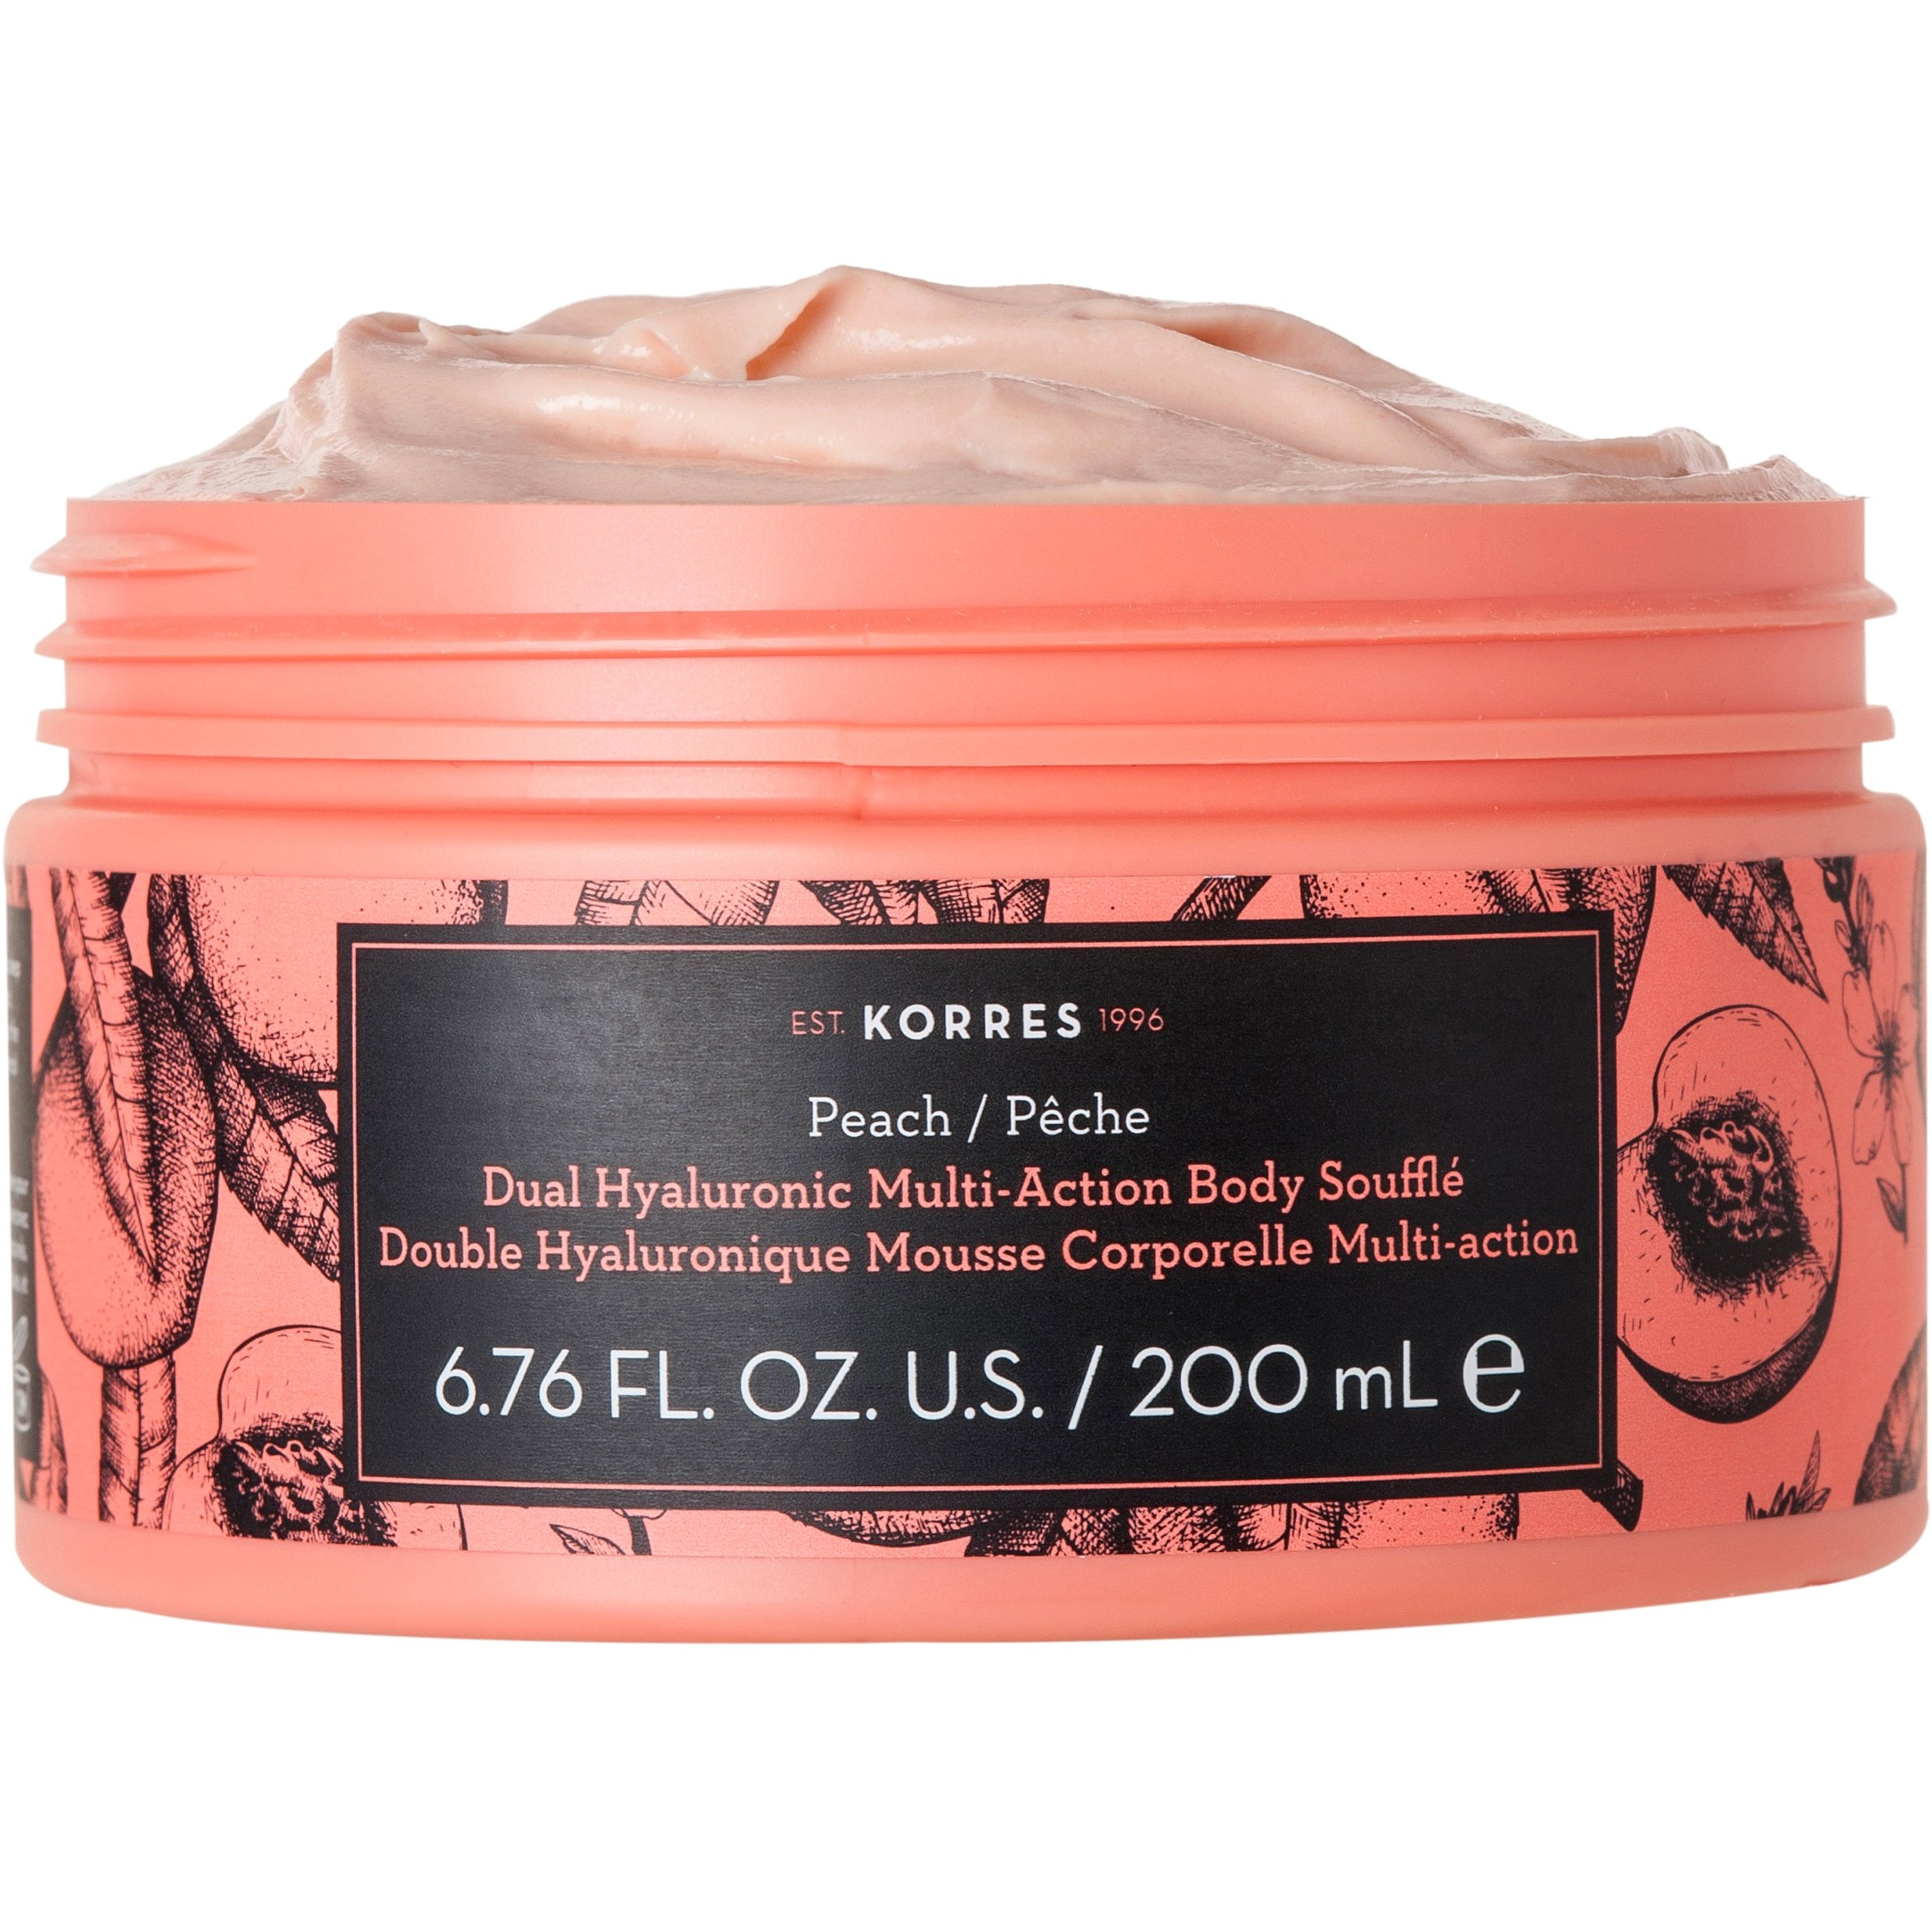 Korres Dual Hyaluronic Multi Action Body Souffle με Διπλό Υαλουρονικό Άρωμα Peach 200ml